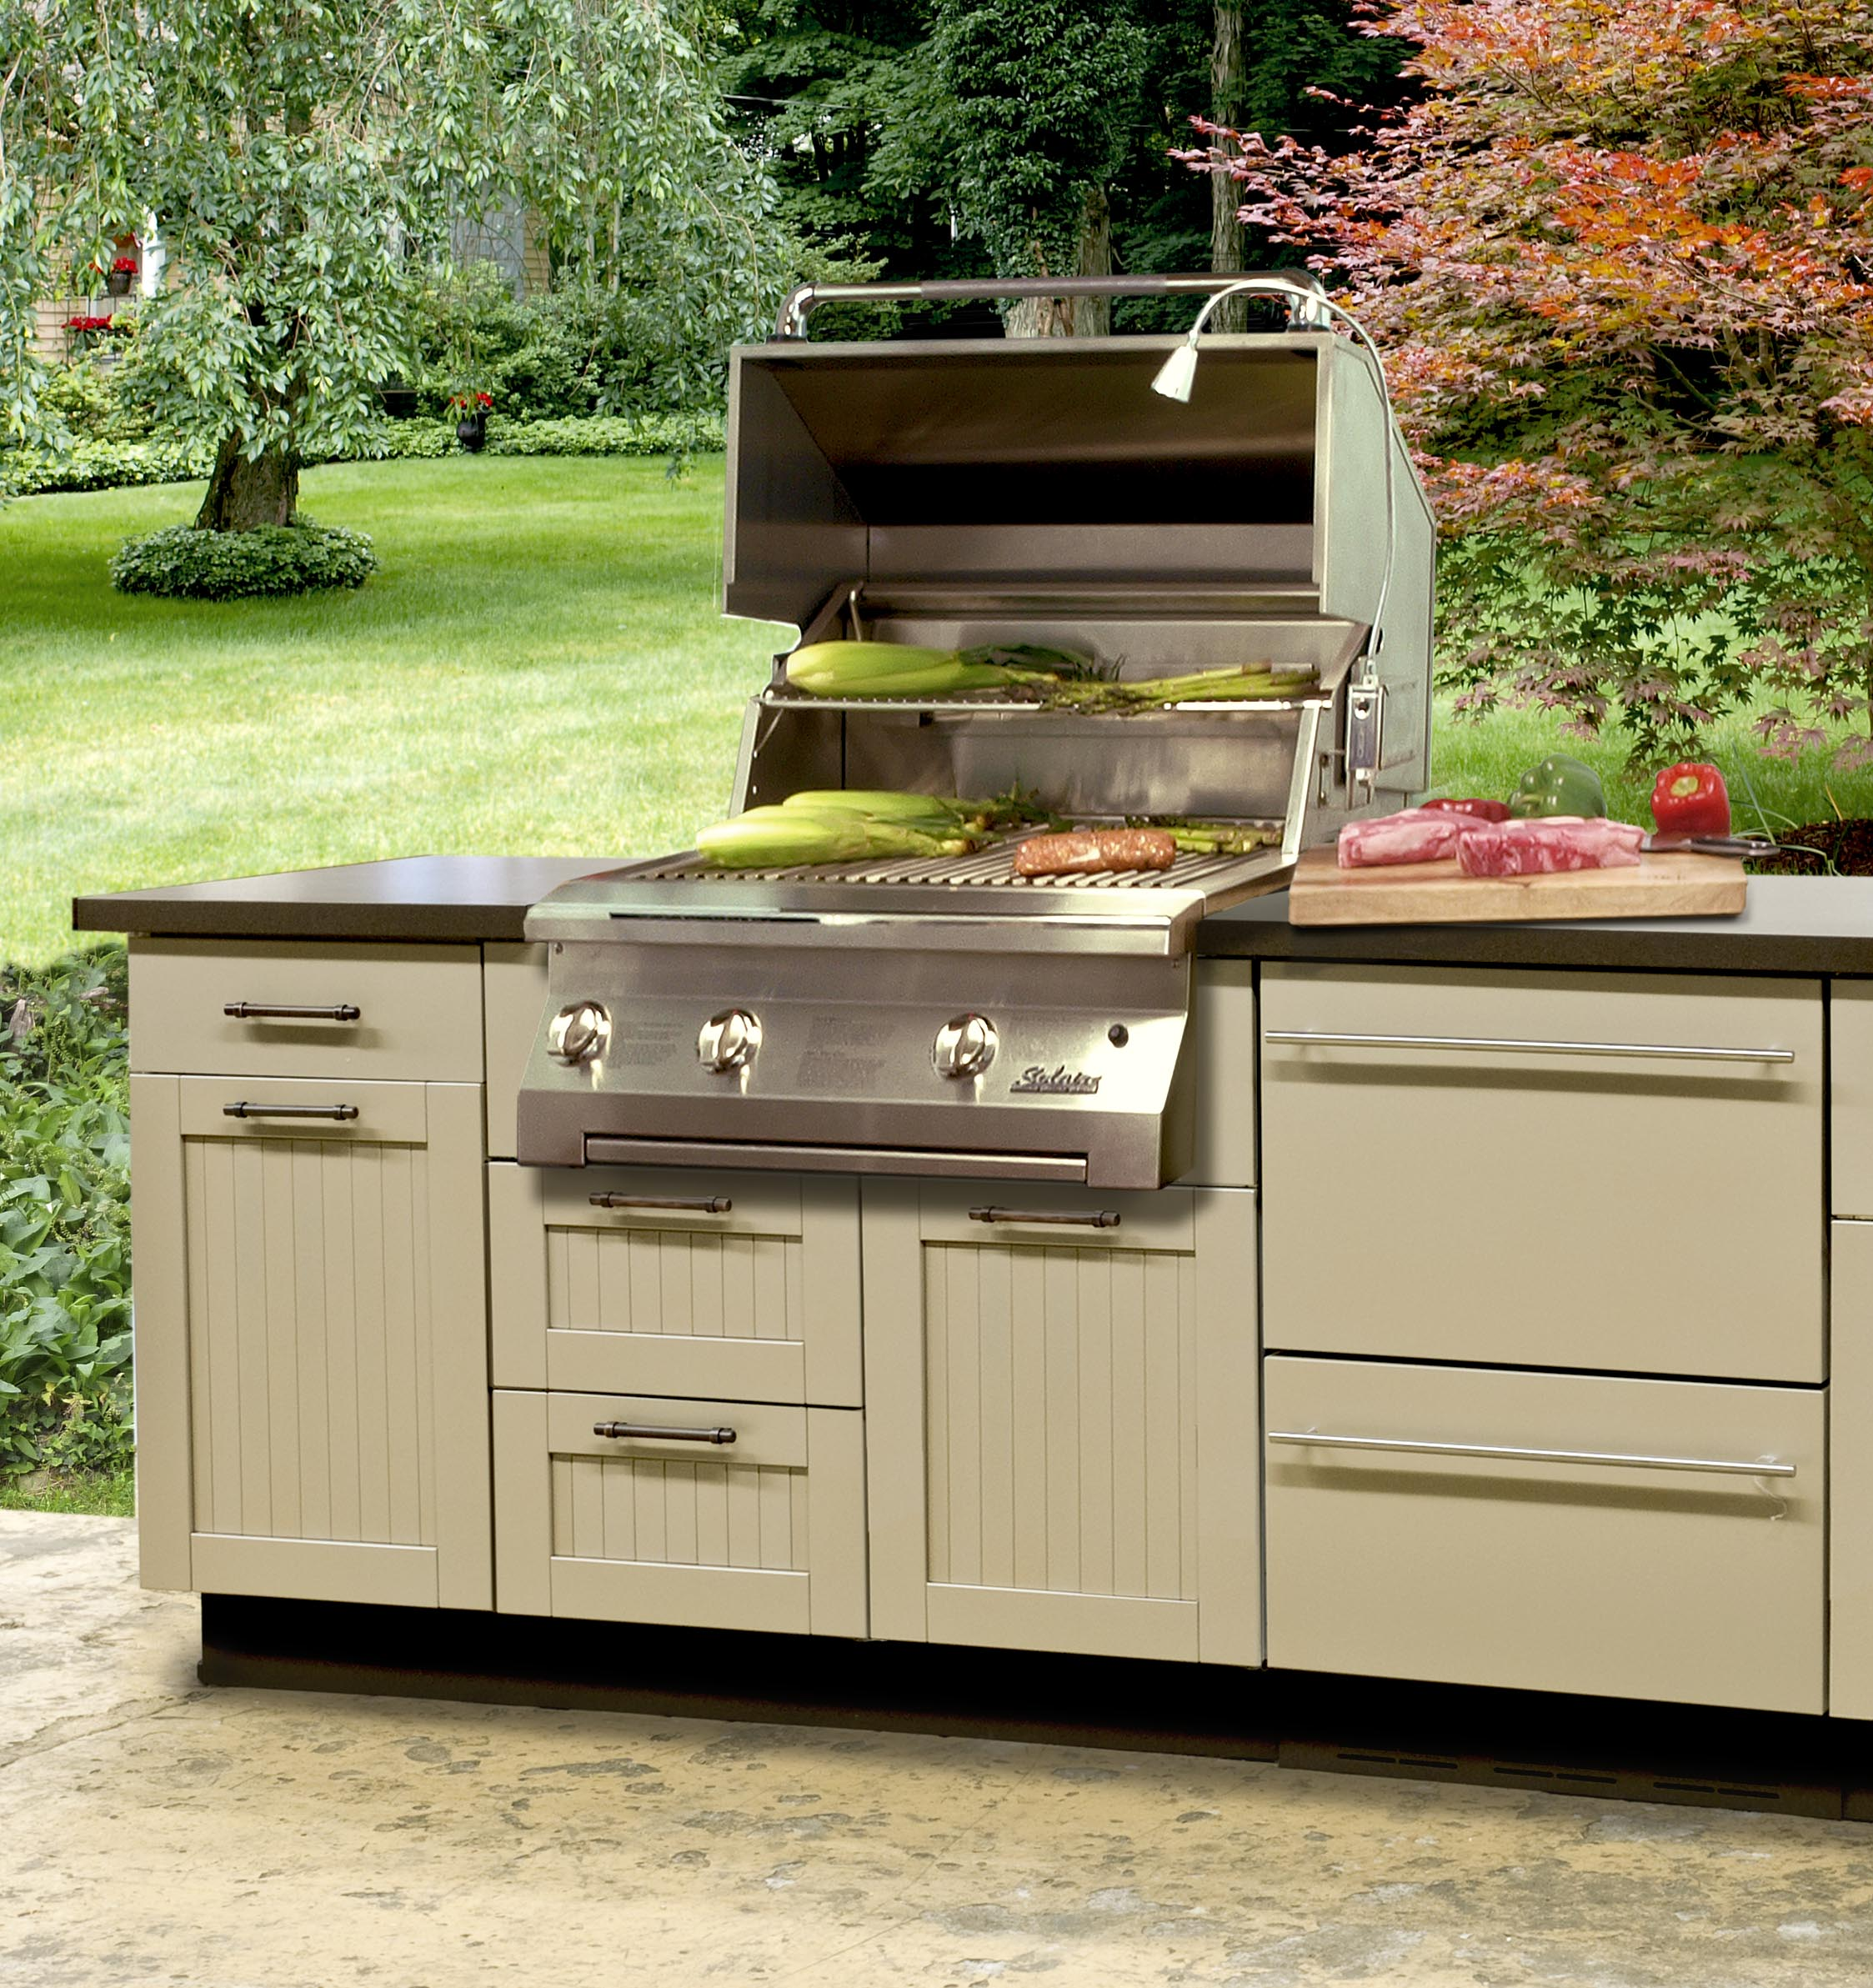 Used Kitchen Cabinets Maryland New Trends In Outdoor Kitchen Ideas For 2017